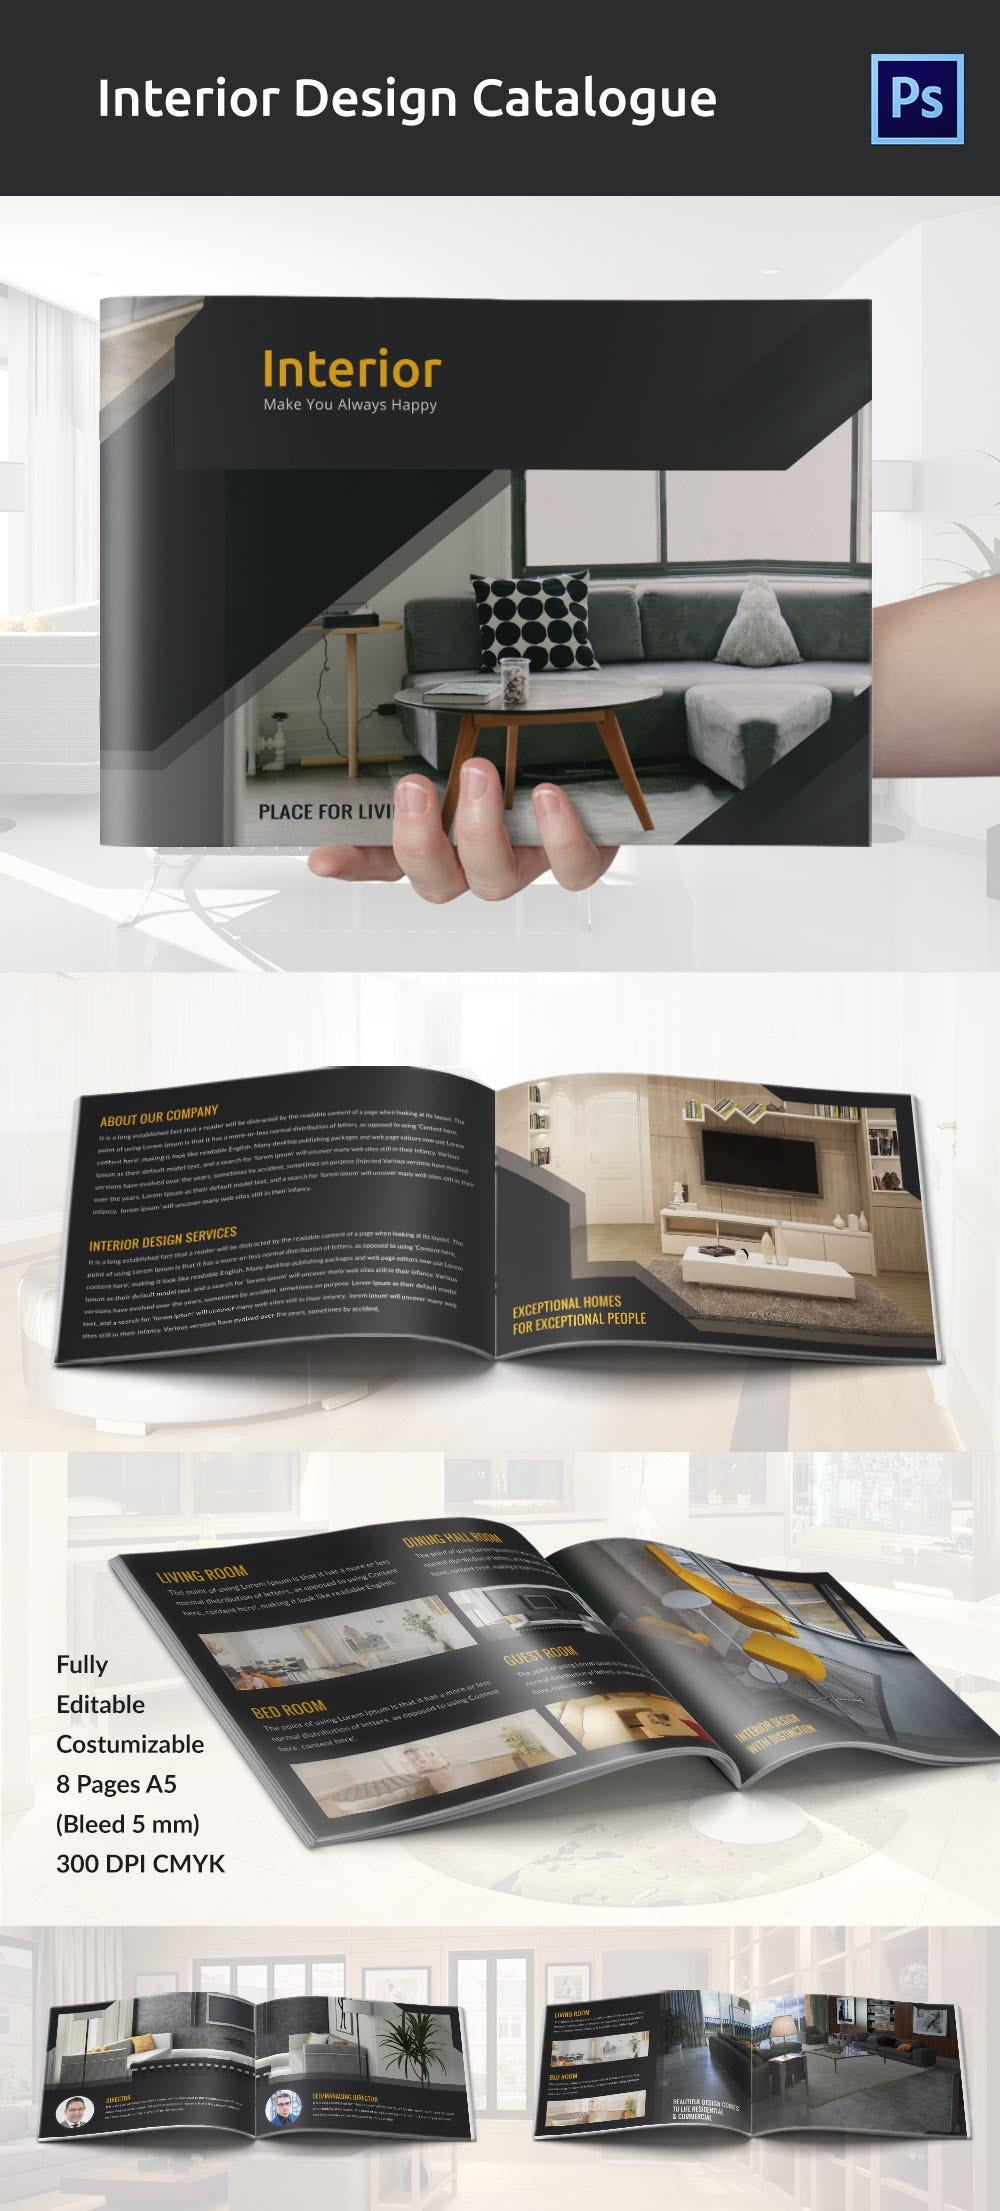 17 Interior Decoration Brochure Free Word PSD PDF EPS